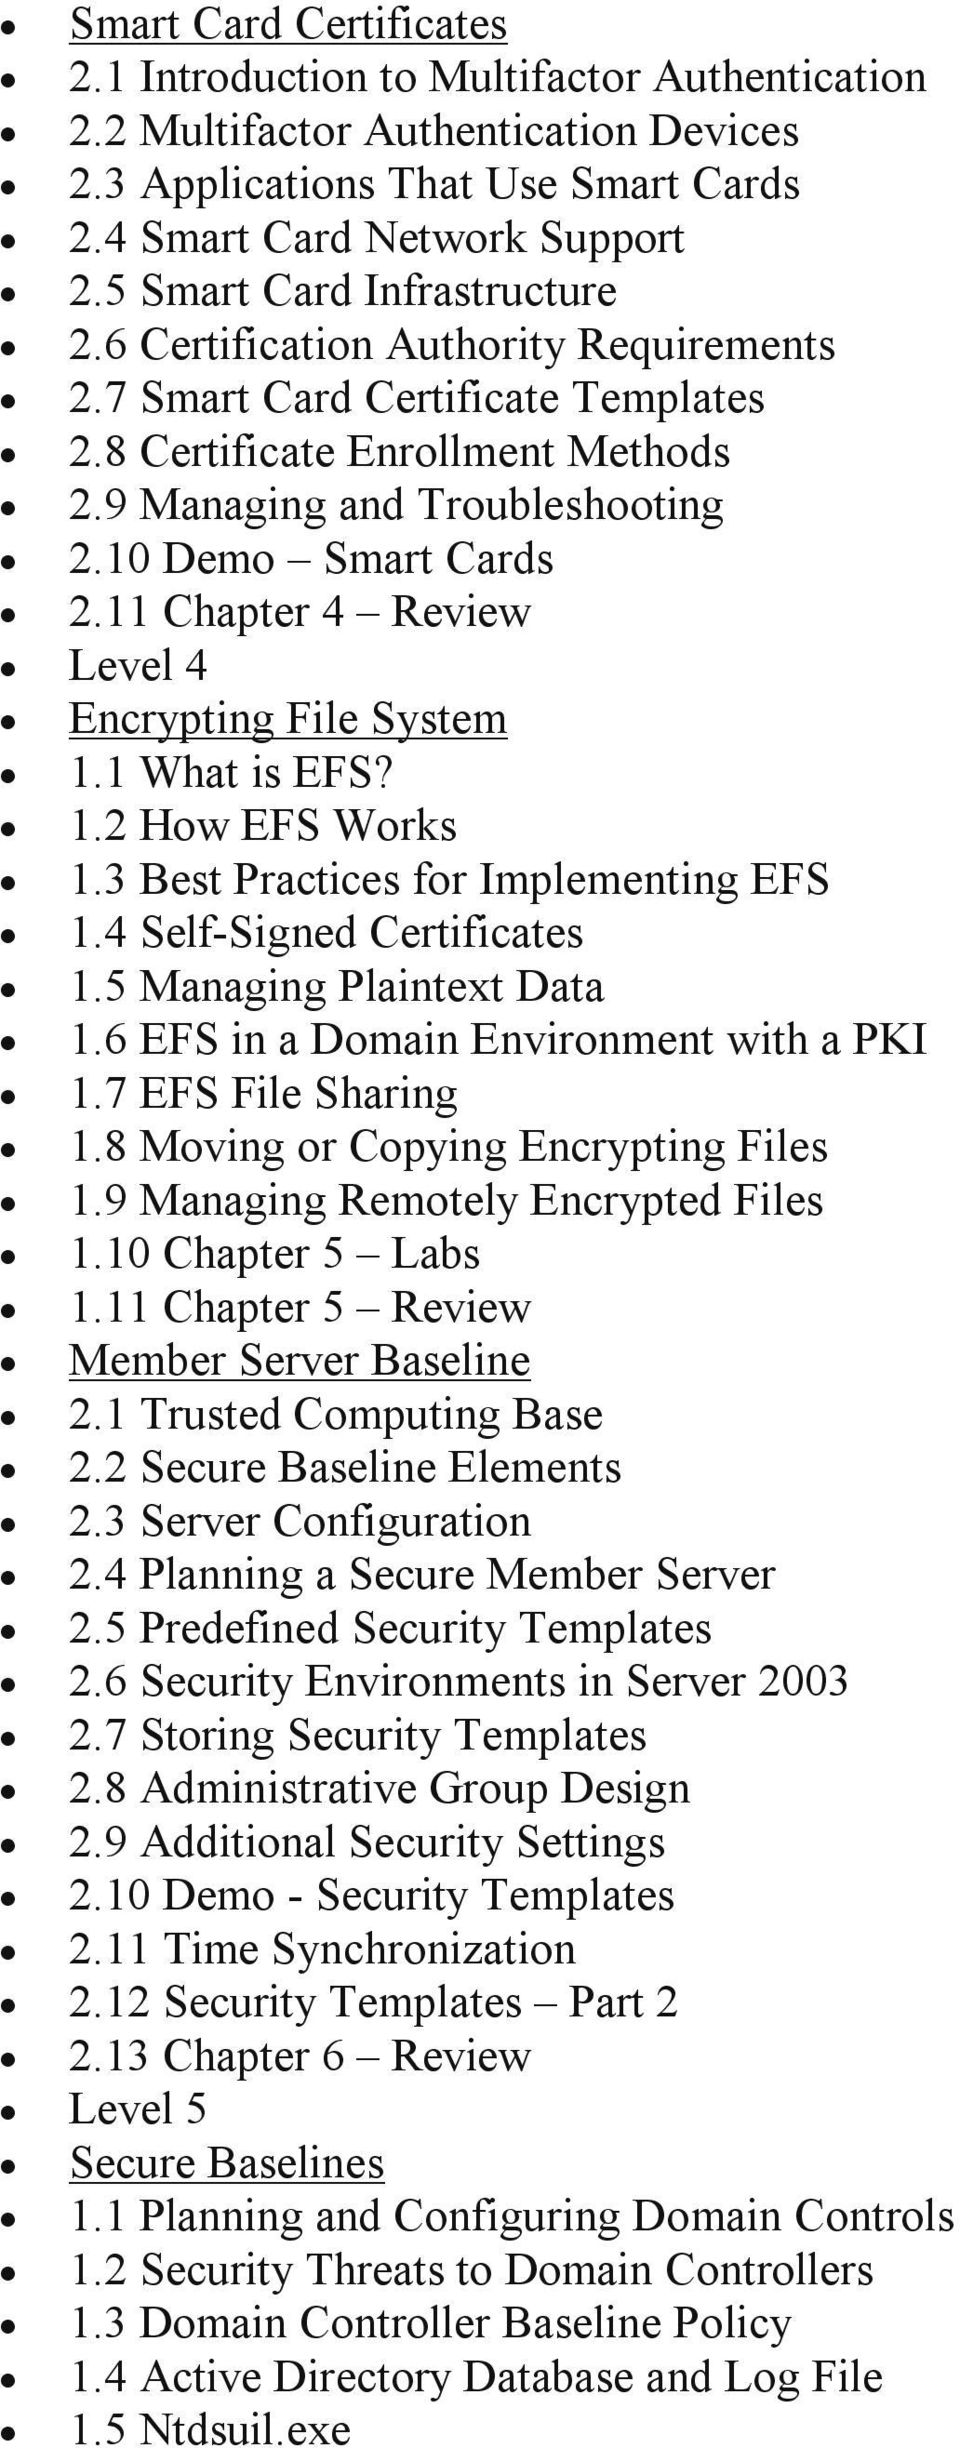 11 Chapter 4 Review Level 4 Encrypting File System 1.1 What is EFS? 1.2 How EFS Works 1.3 Best Practices for Implementing EFS 1.4 Self Signed Certificates 1.5 Managing Plaintext Data 1.